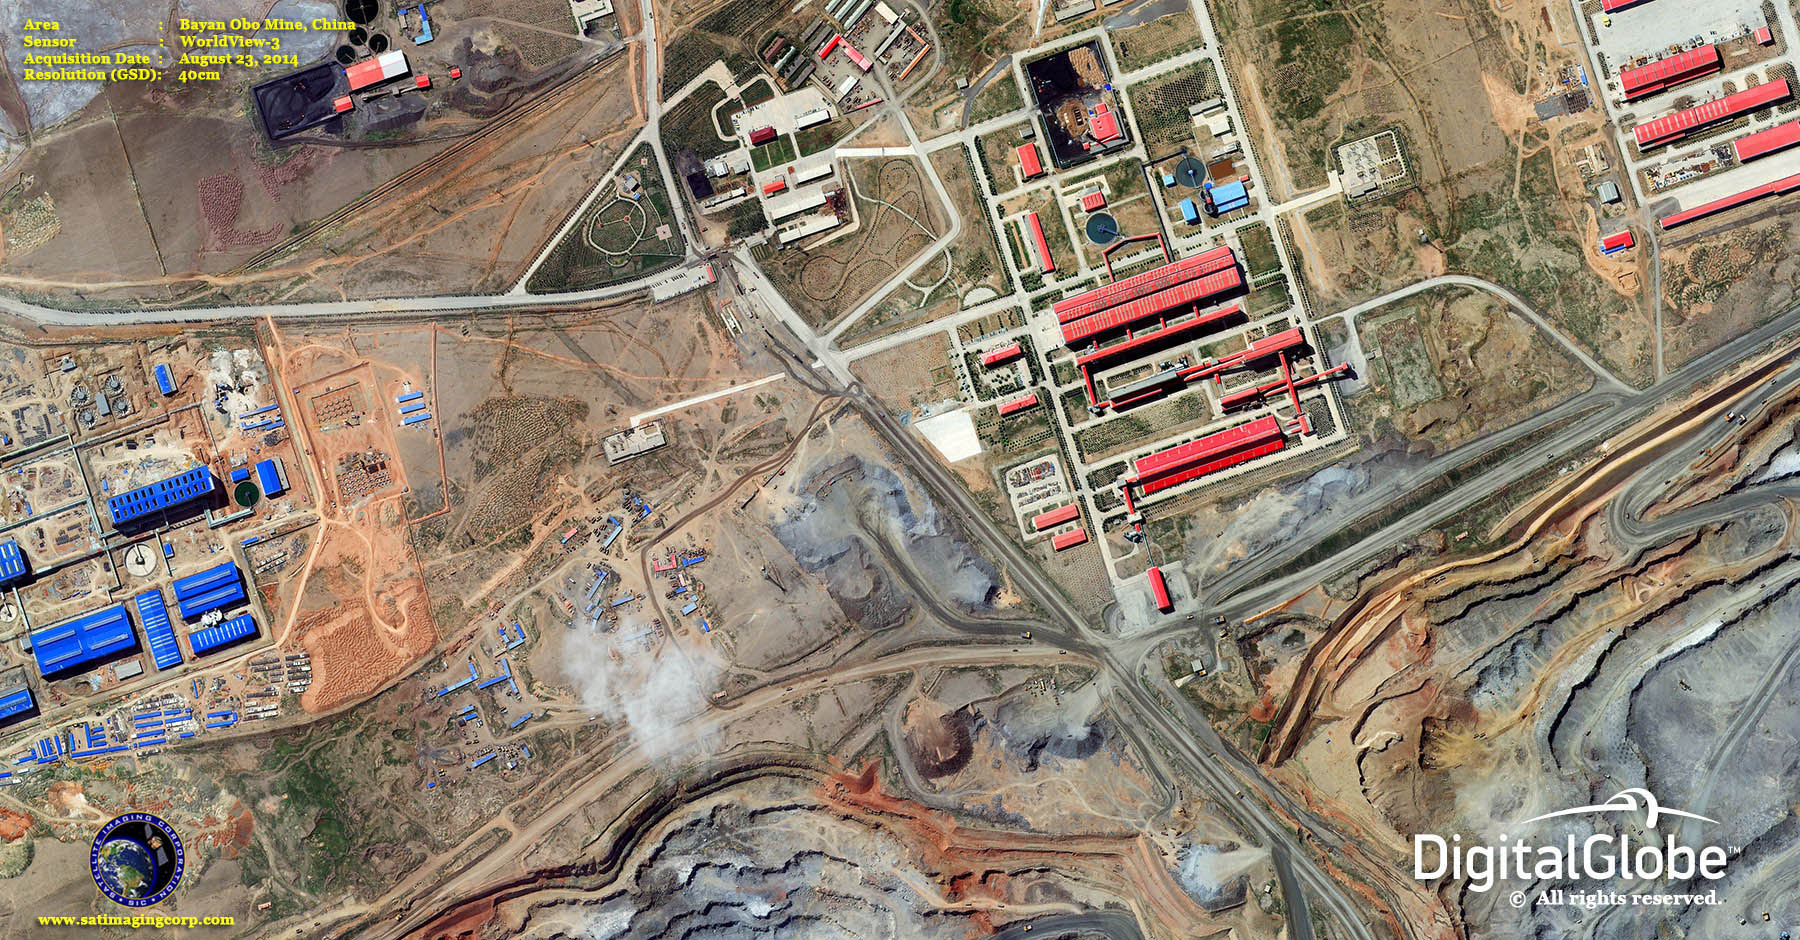 WorldView-3-Satellite-Image-Bayan-Obo-Mine